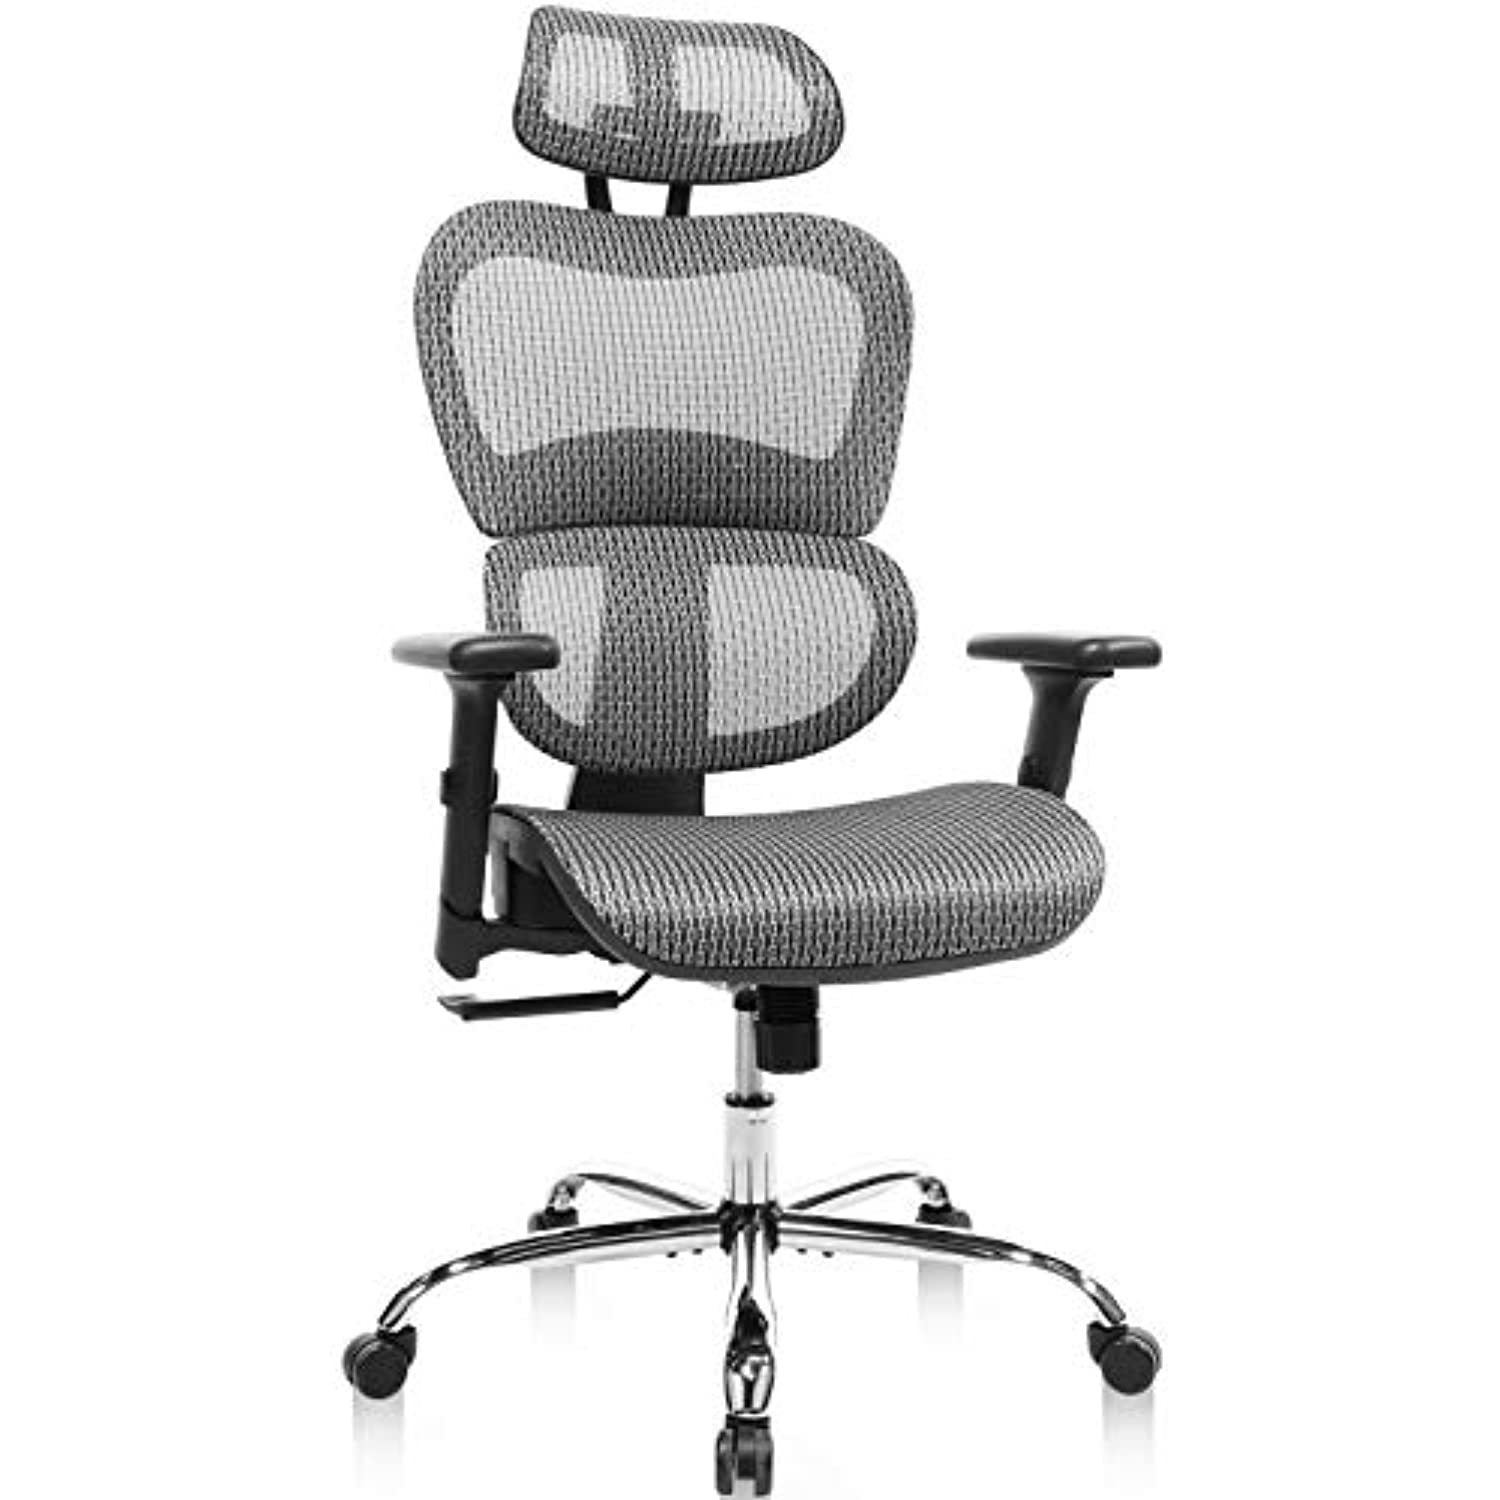 Home Office Chair Mesh Ergonomic Computer Chair with 3D Adjustable Armrests Desk Chair High Back Technical Task Chair - Grey